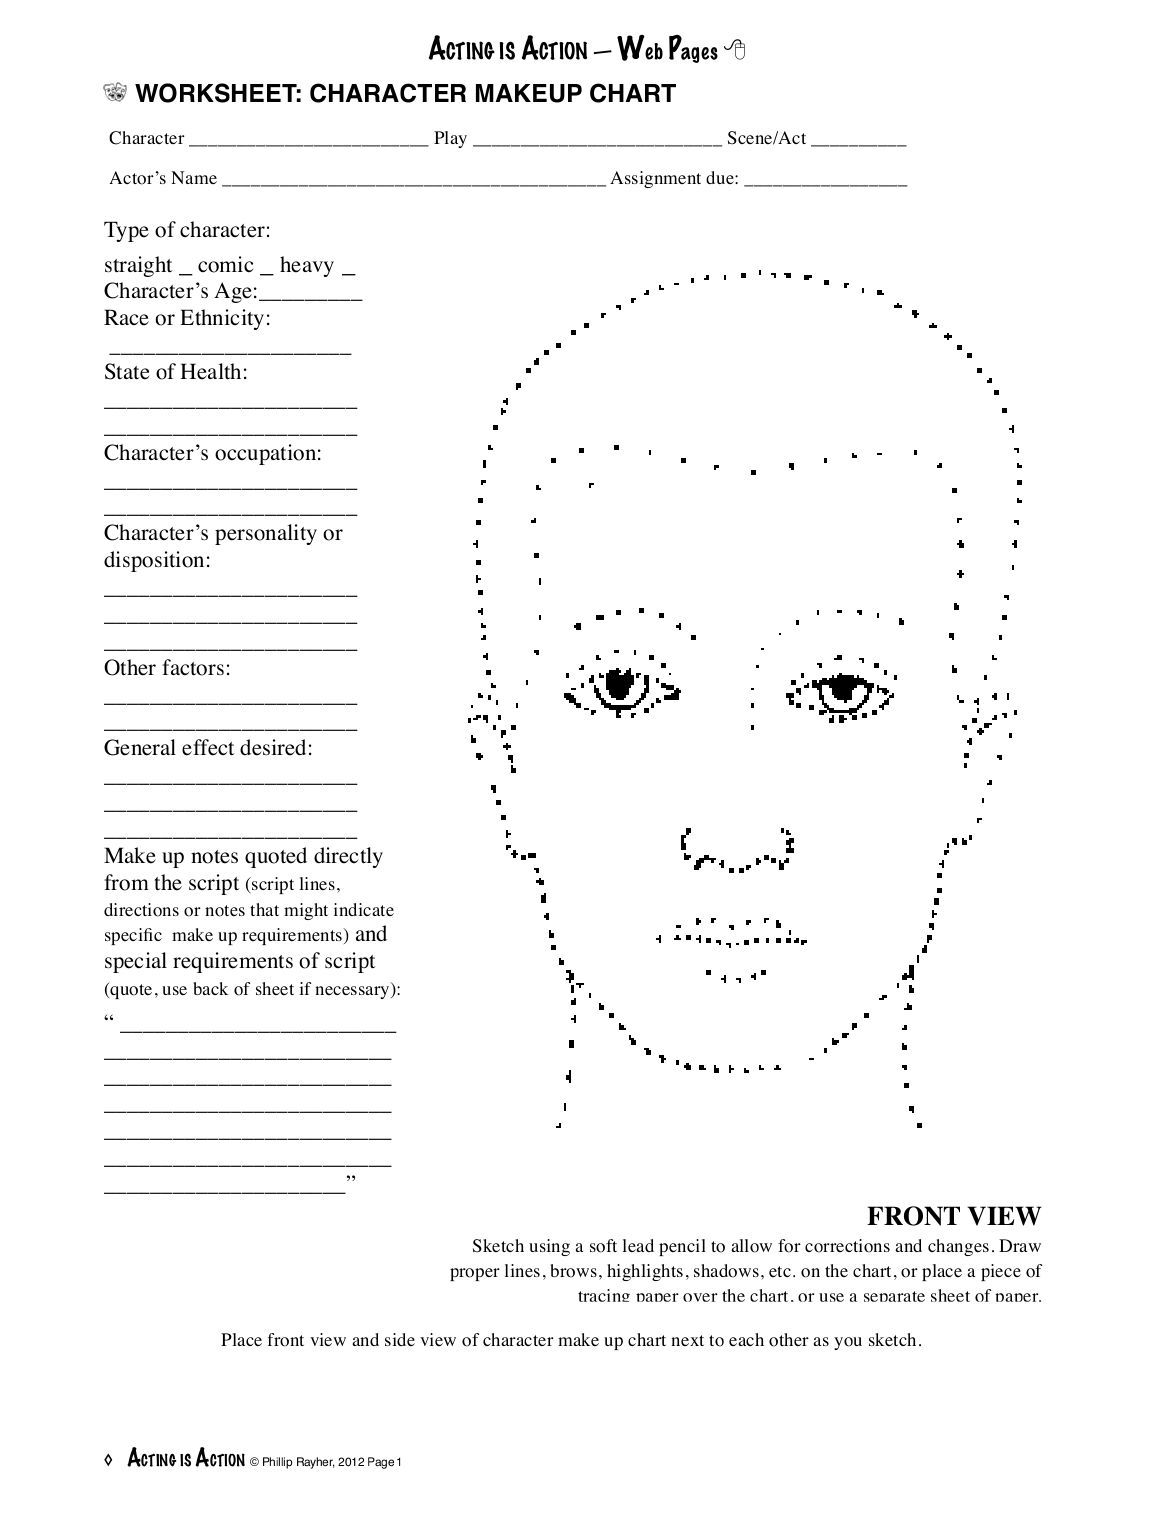 Worksheet Character Makeup Chart